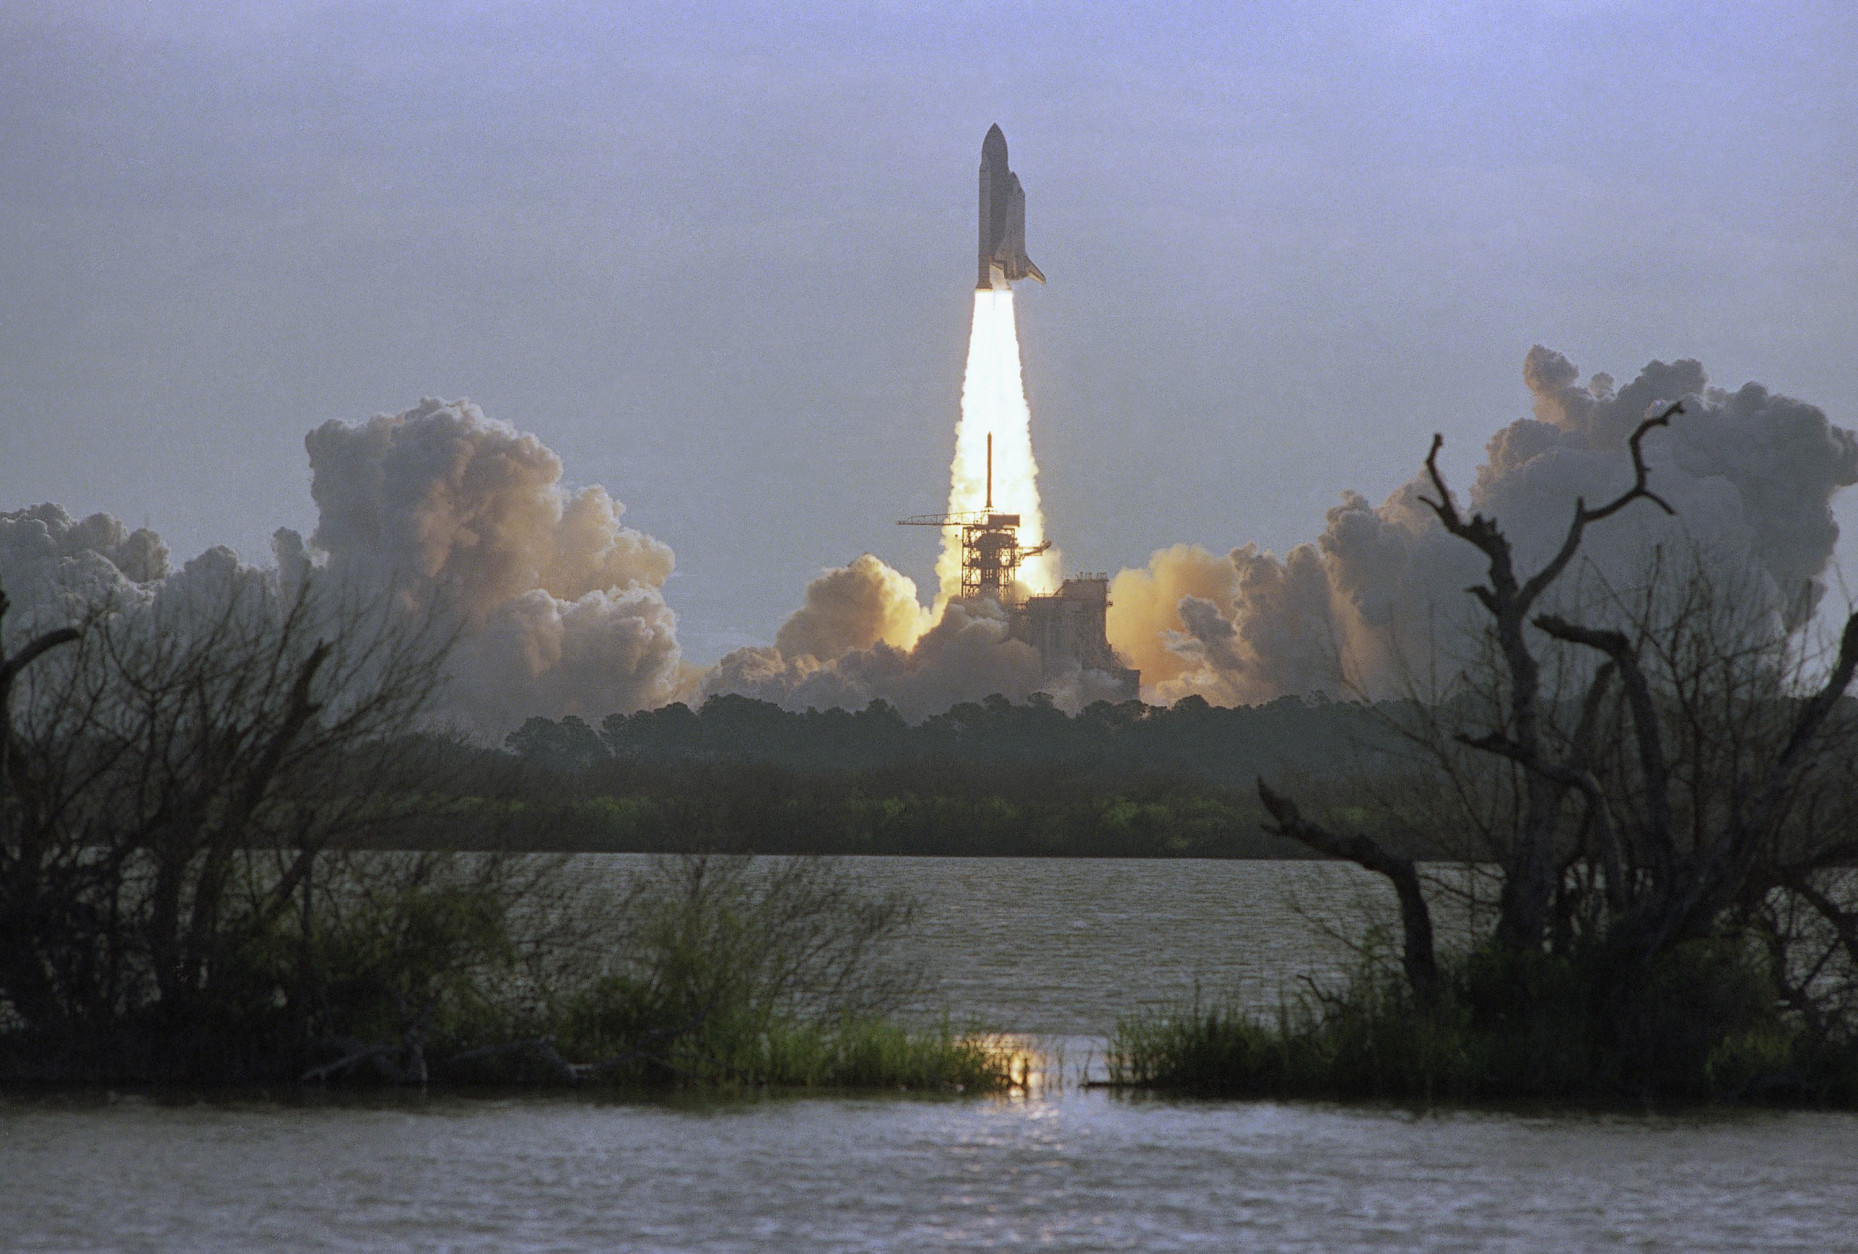 The Space Shuttle orbiter Discovery lifts off from Launch Pad 398 in Kennedy Space Center at morning on Tuesday, April 24, 1990, carrying a crew of five and the Hubble Space Telescope. The mission, STS-31, had been originally scheduled for launch on April 10th but was scrubbed because of a faulty APU. NASA officials and scientist around the world are looking forward to the first glimpse into space by the telescope. (AP Photo/Paul Kizzle)